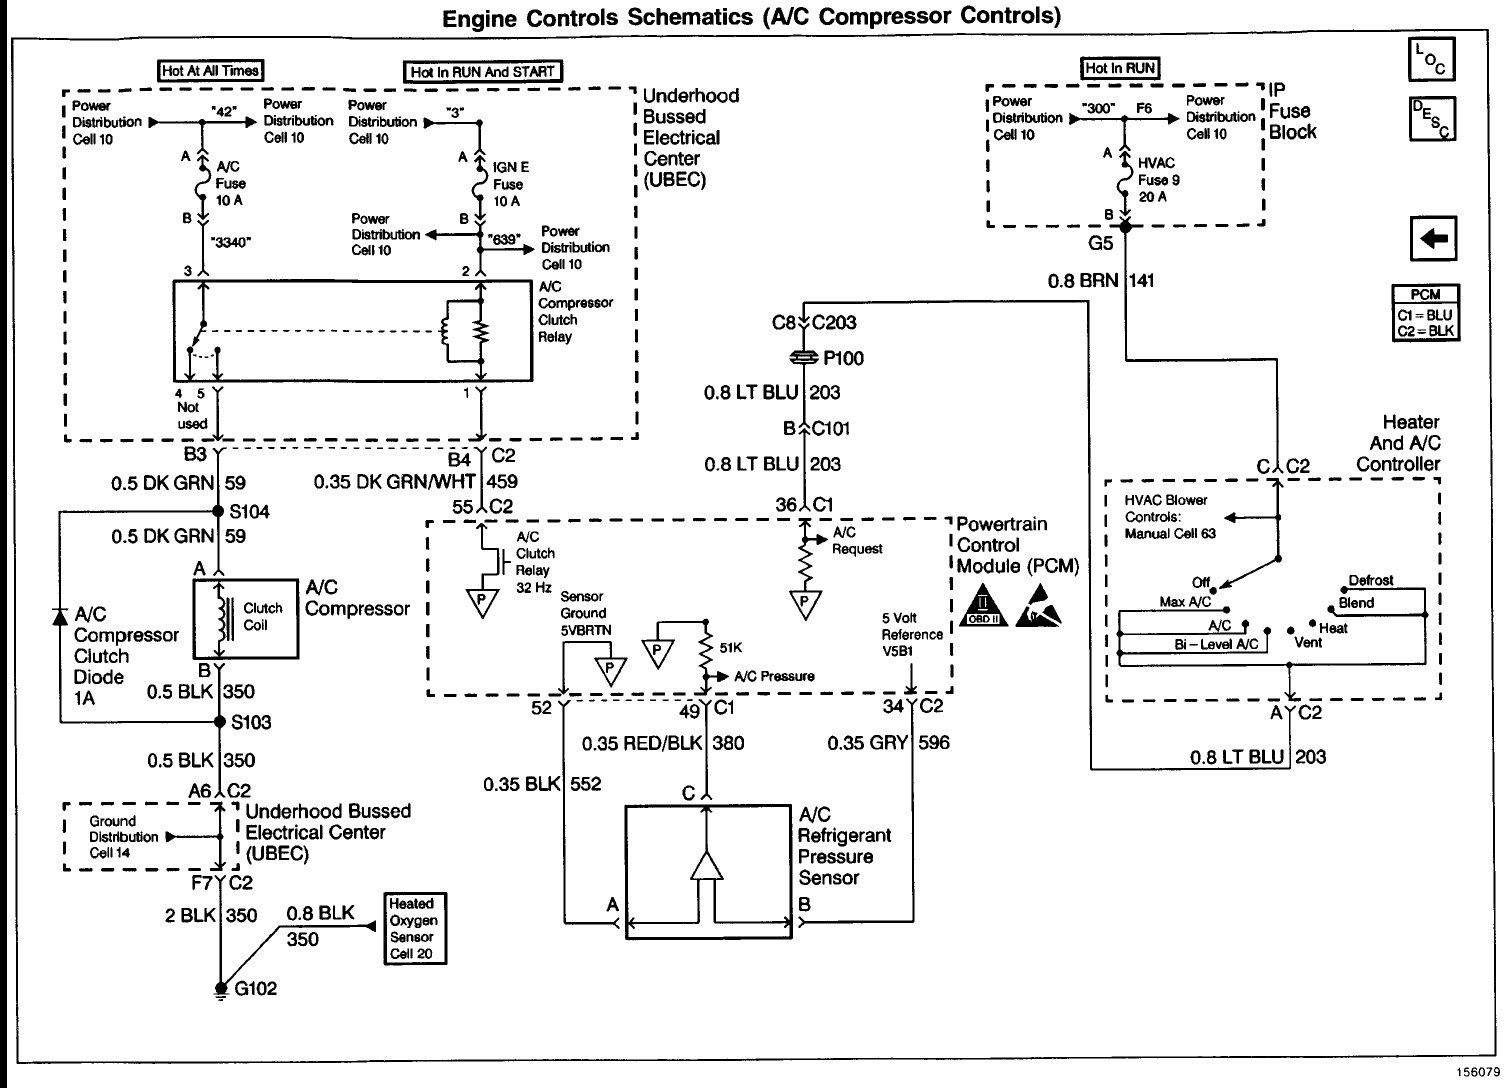 2000 Chevy S10 Wiring Diagram Elvenlabs Com 13 4 Hastalavista With Awesome Chevrolet S10 Wiring Diagram 9025 Chevy S10 Diagram Chevy